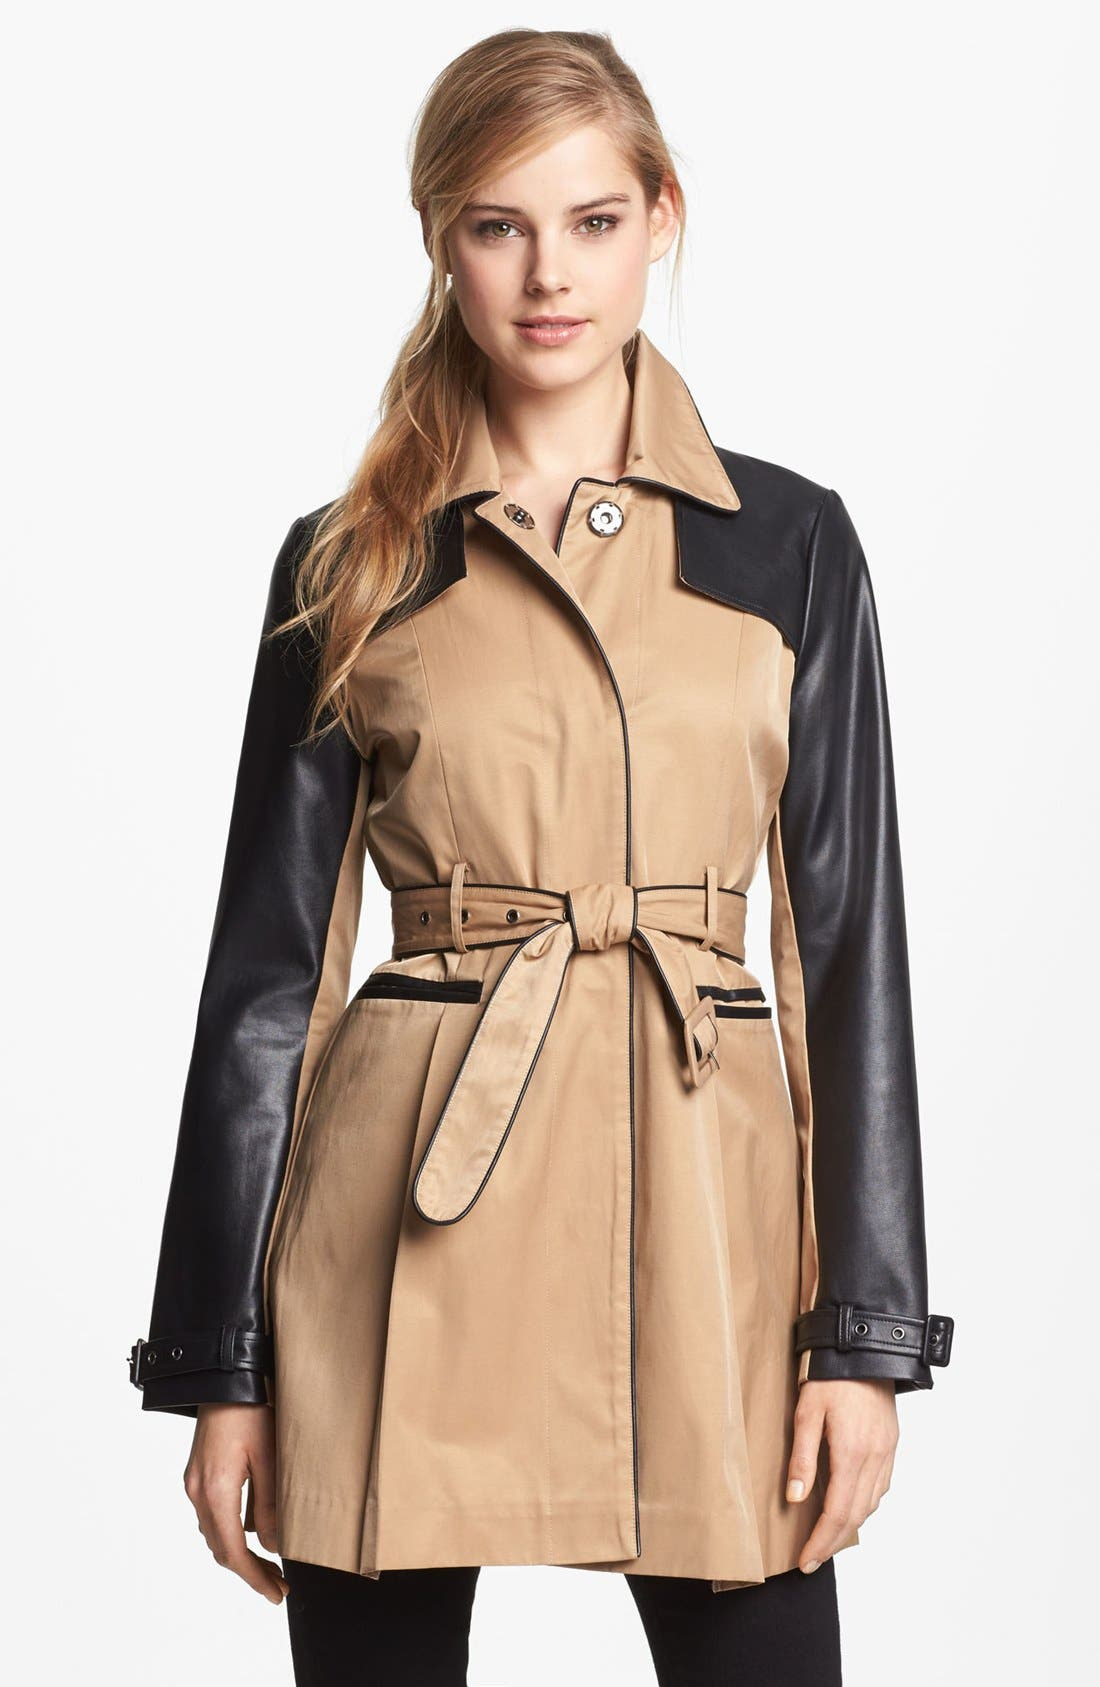 BEBE Faux Leather Trim Trench Coat, Main, color, 250